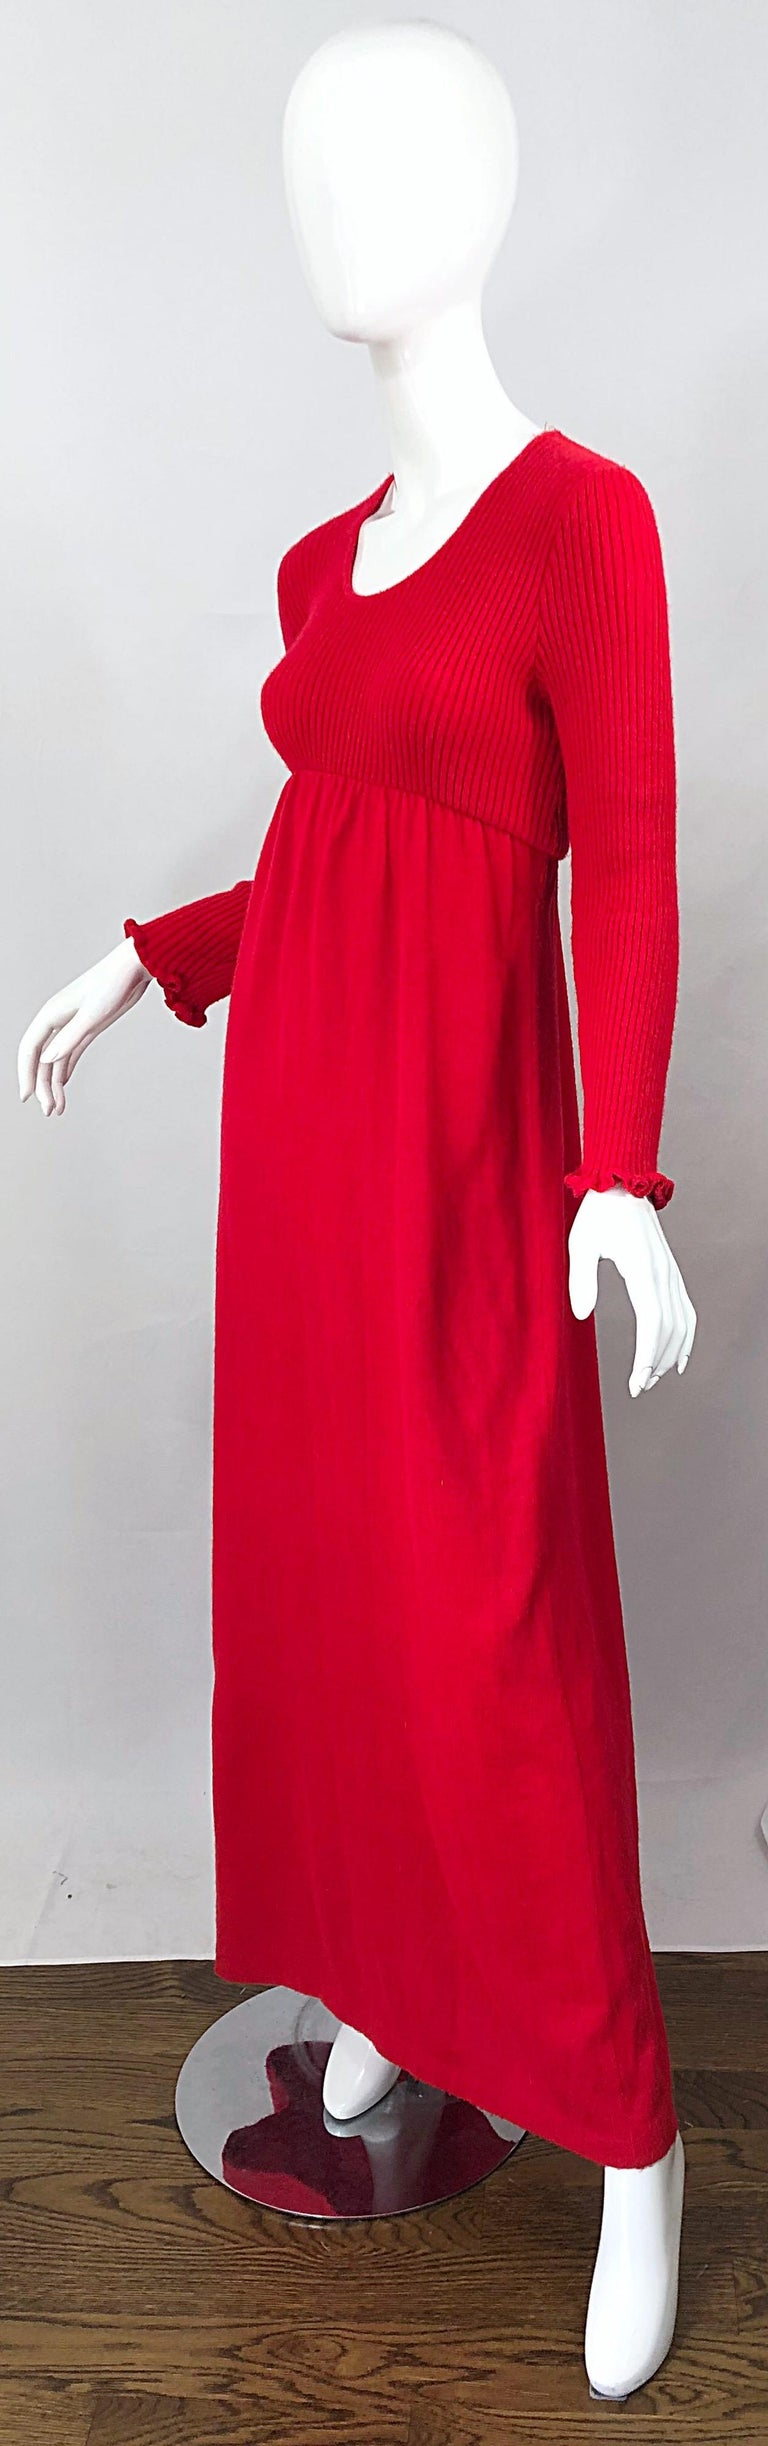 Vintage Joseph Magnin 1970s Lipstick Red Long Sleeve Wool 70s Sweater Maxi Dress For Sale 1